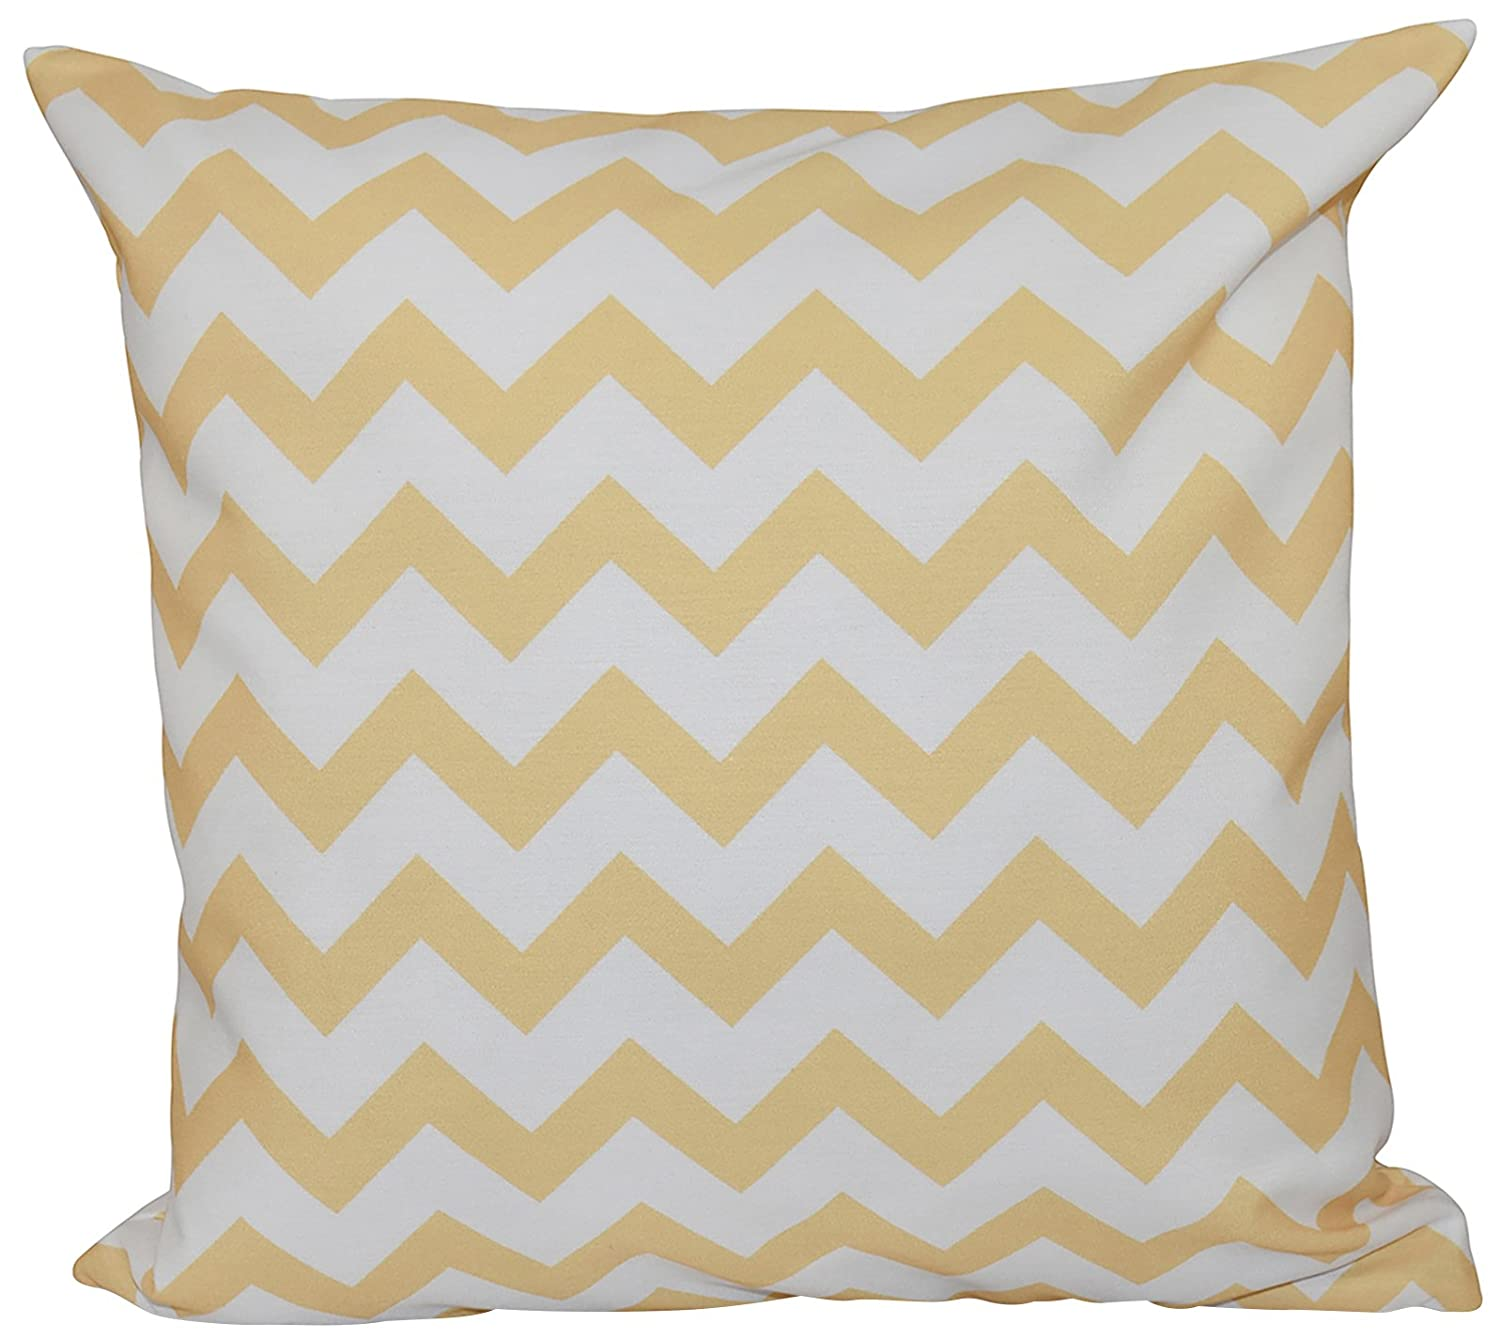 E by design O5PG-N13-Yellow-16 Printed Outdoor Pillow